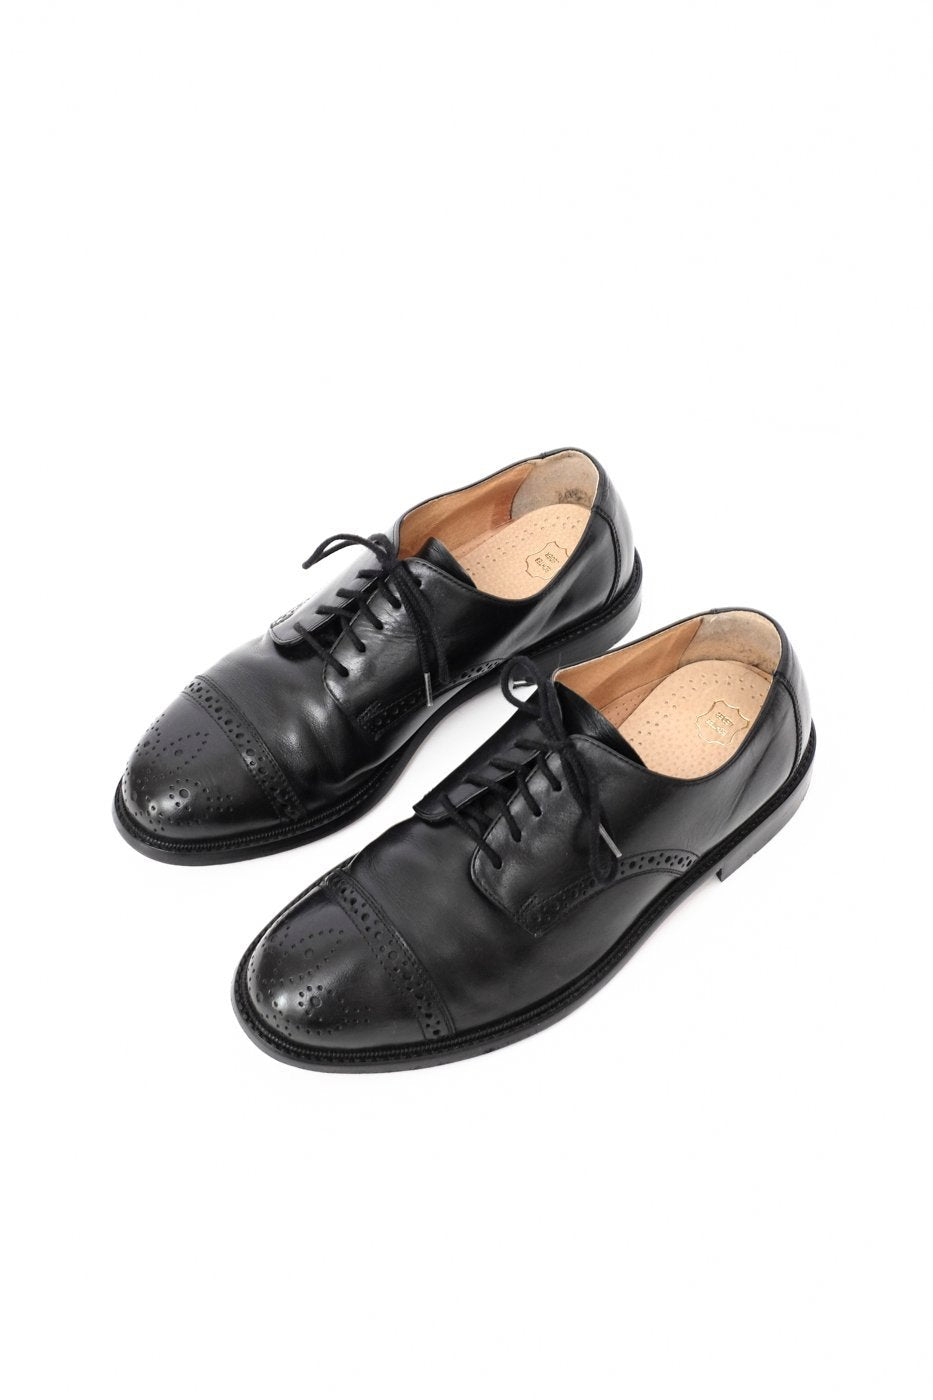 0402_BLACK 42 BUDAPESTER LEATHER BROGUES